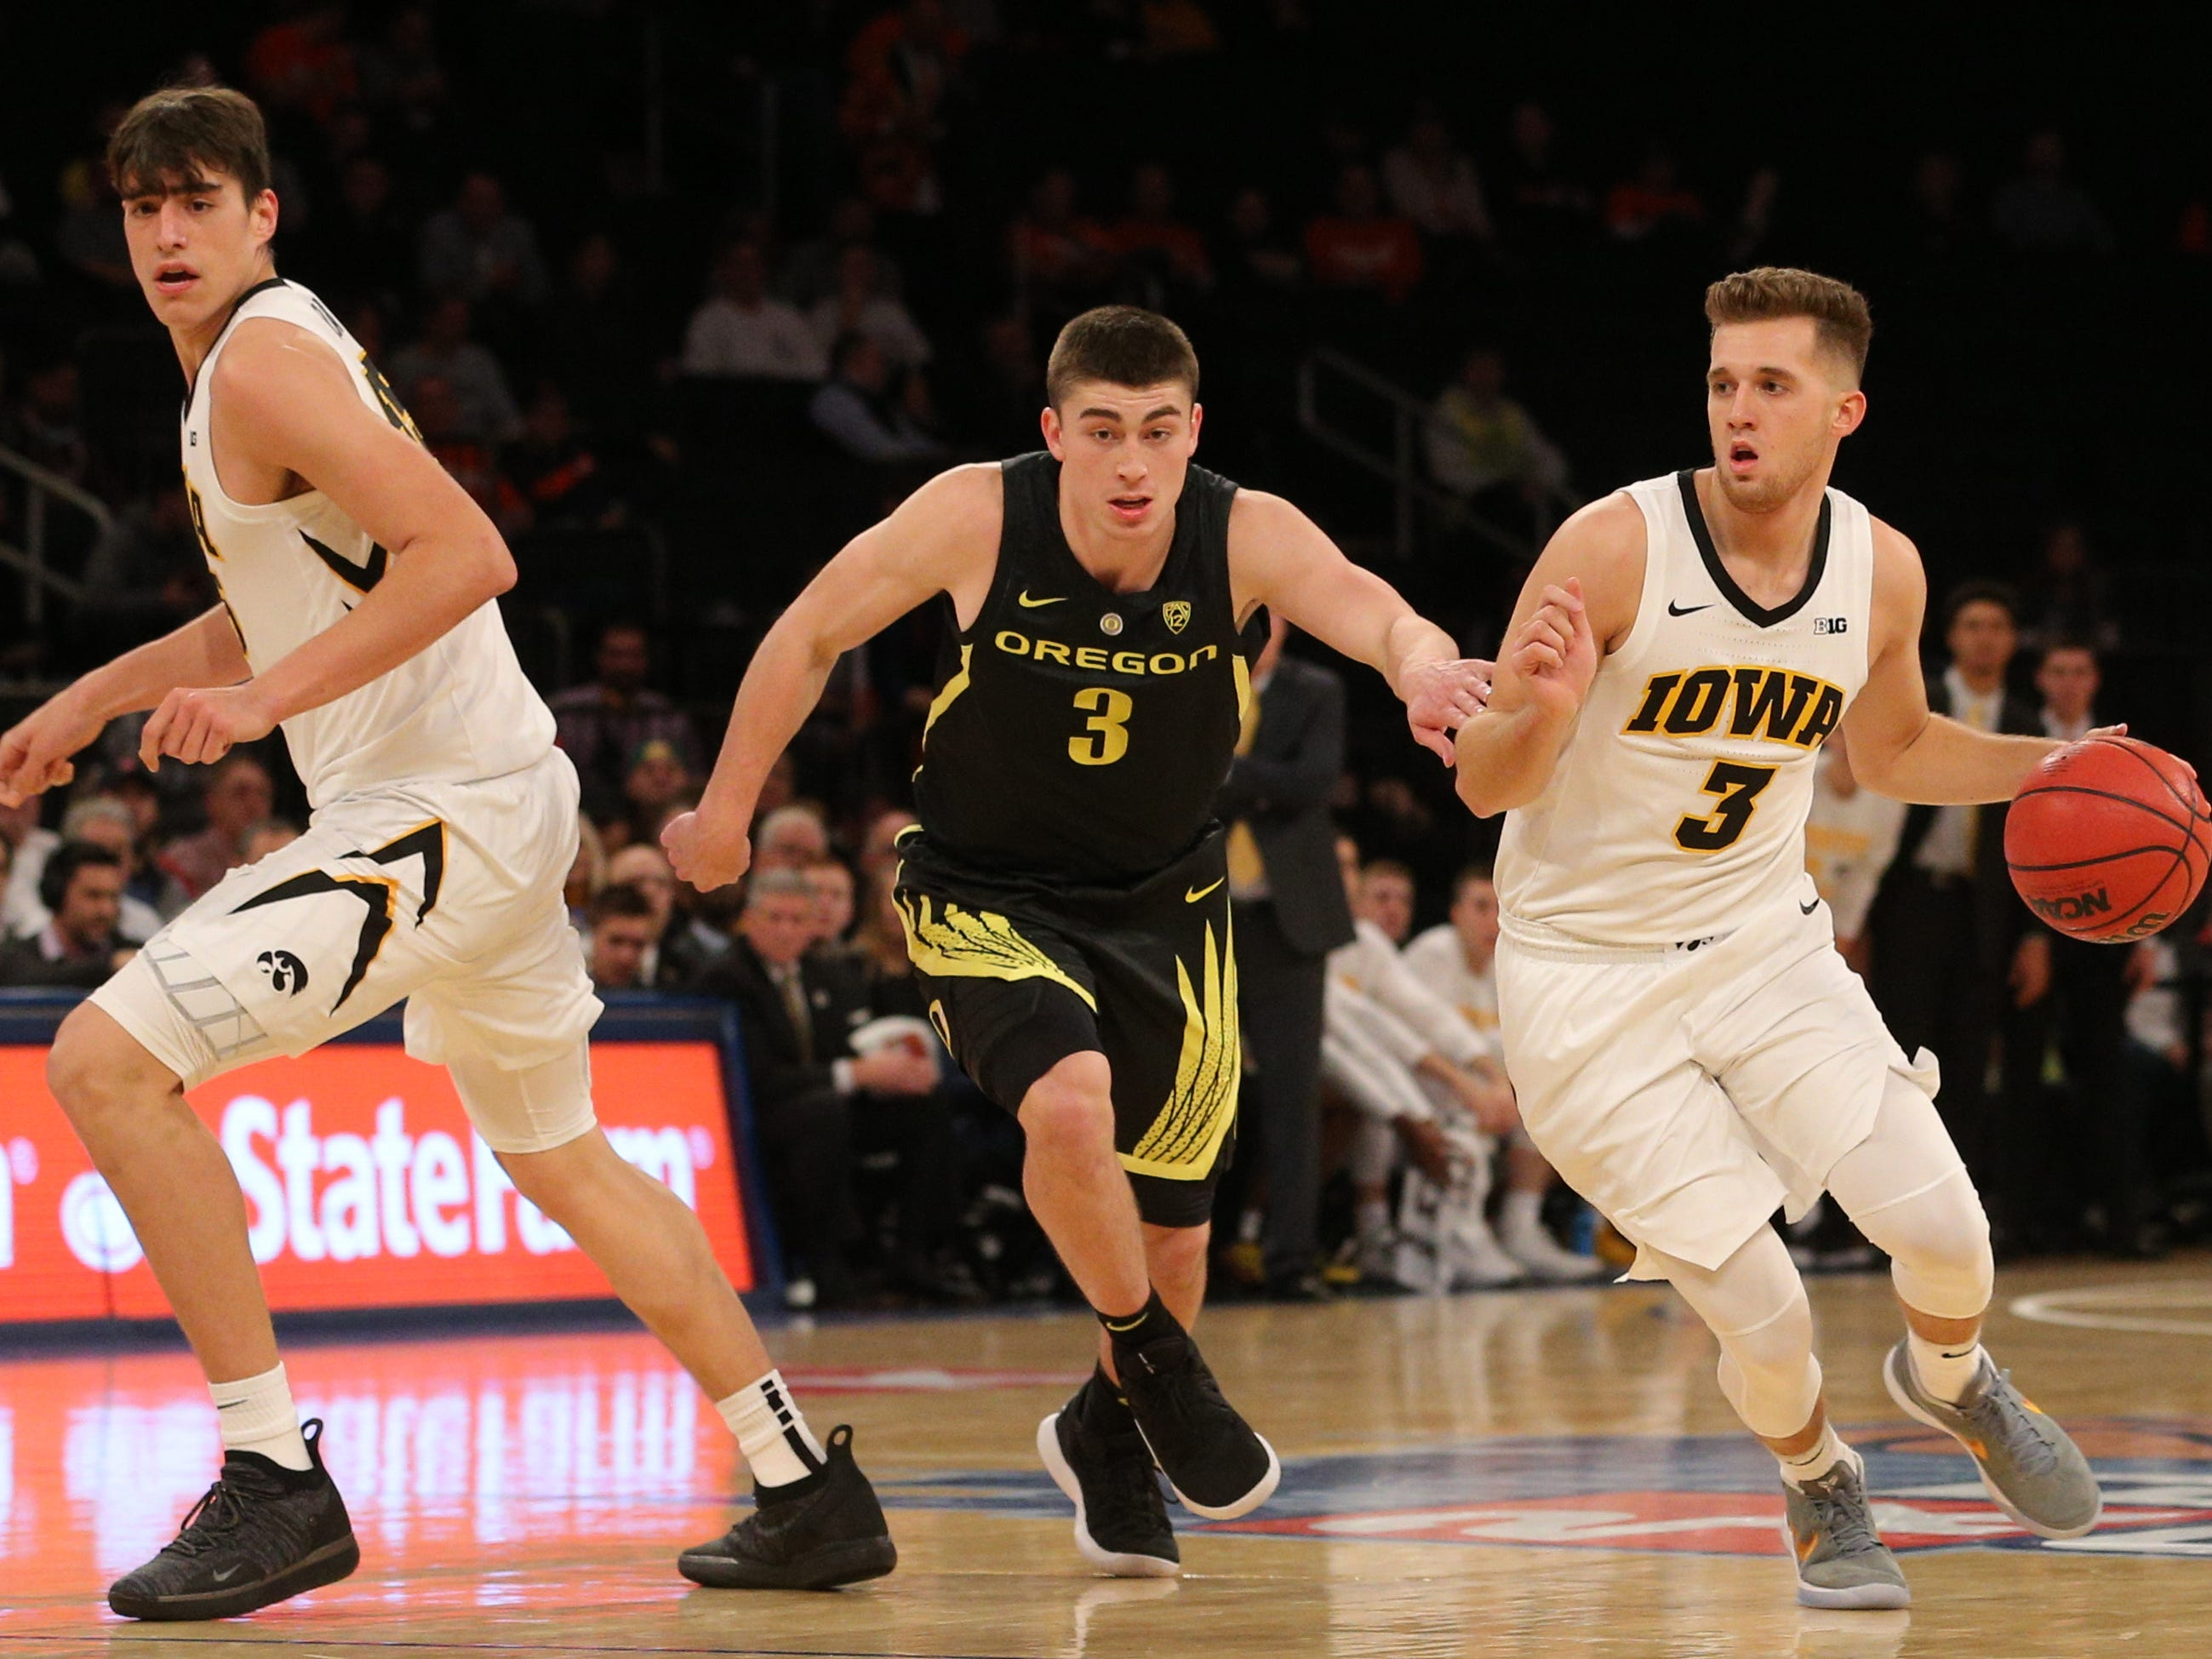 Nov 15, 2018; New York, NY, USA; Iowa Hawkeyes guard Jordan Bohannon (3) controls the ball against Oregon Ducks guard Payton Pritchard (3) during the first half at Madison Square Garden.